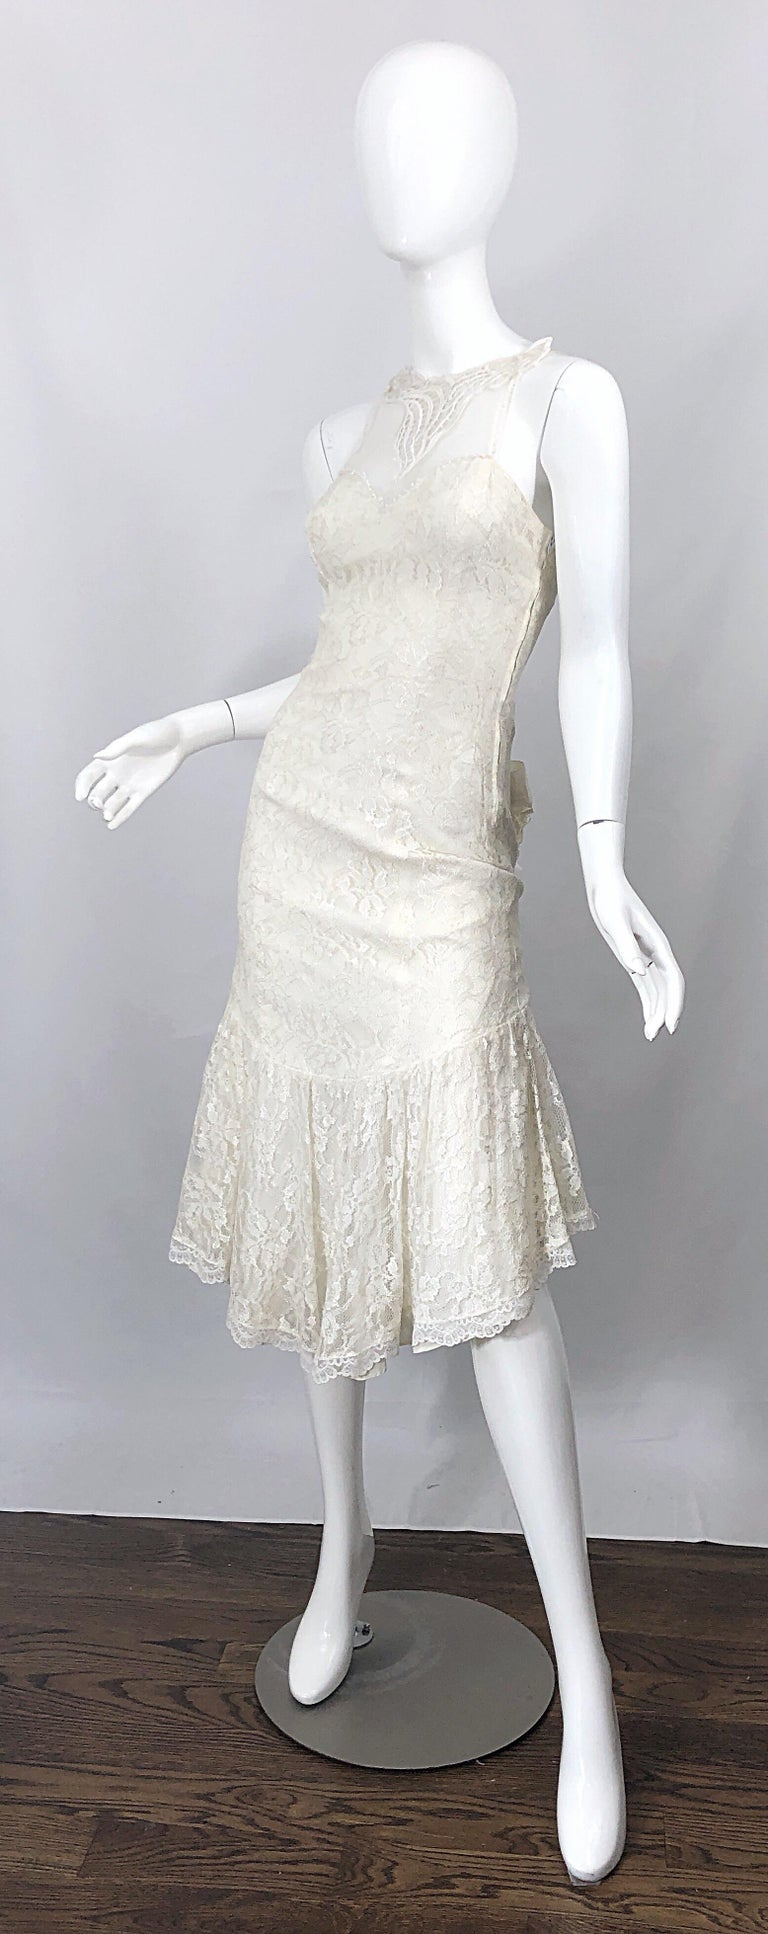 1980s Samir Ivory White Lace Handkerchief Hem Embroidered Vintage 80s Dress For Sale 1